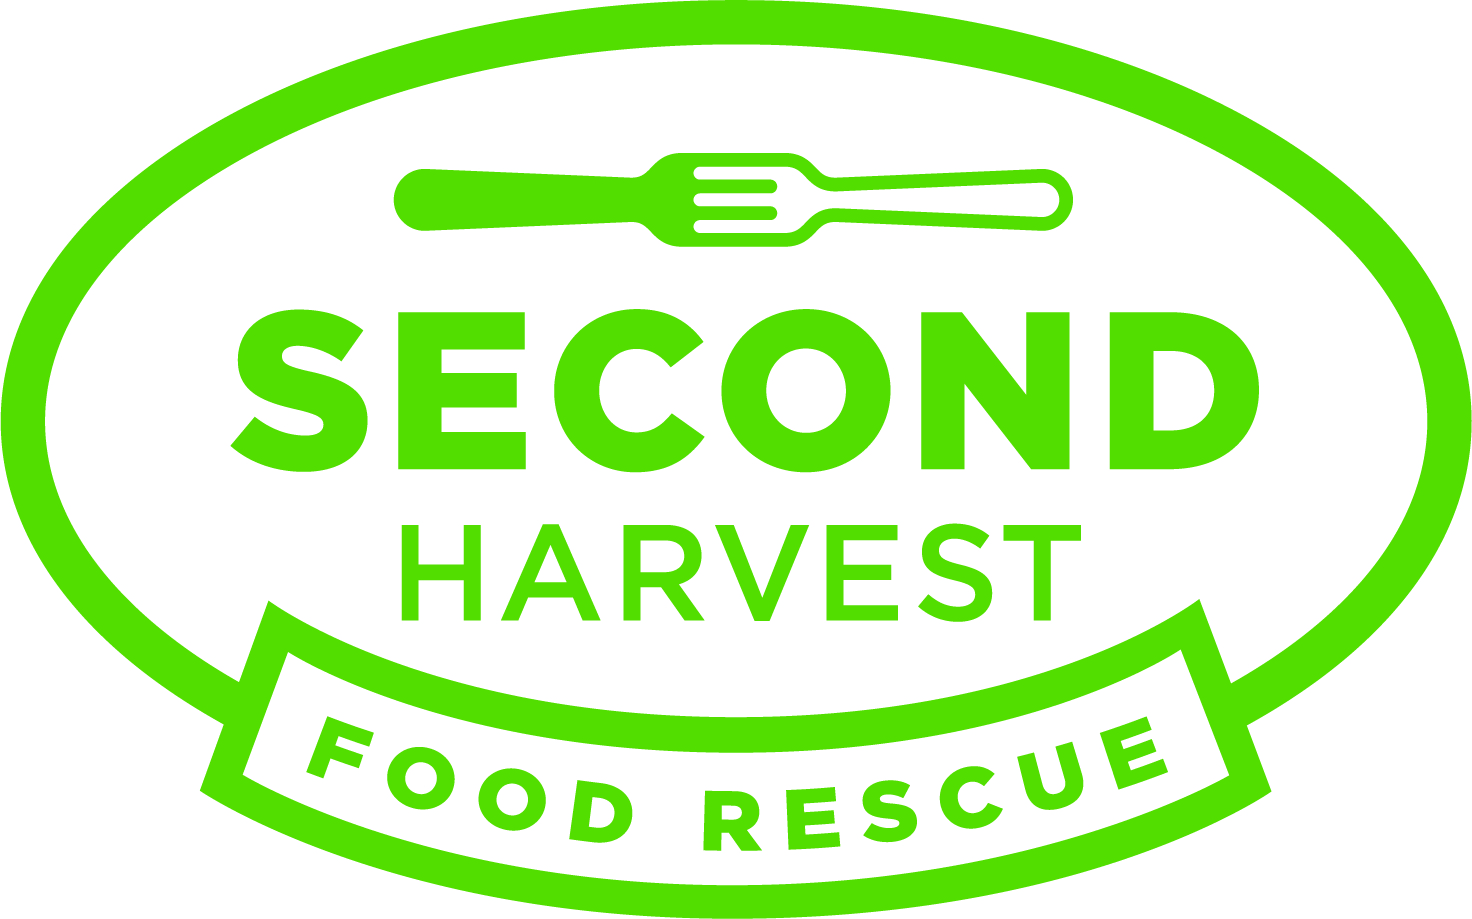 Second Harvest CEO Lori Nikkel selectedas one of the Top 25 Women of Influence of 2021